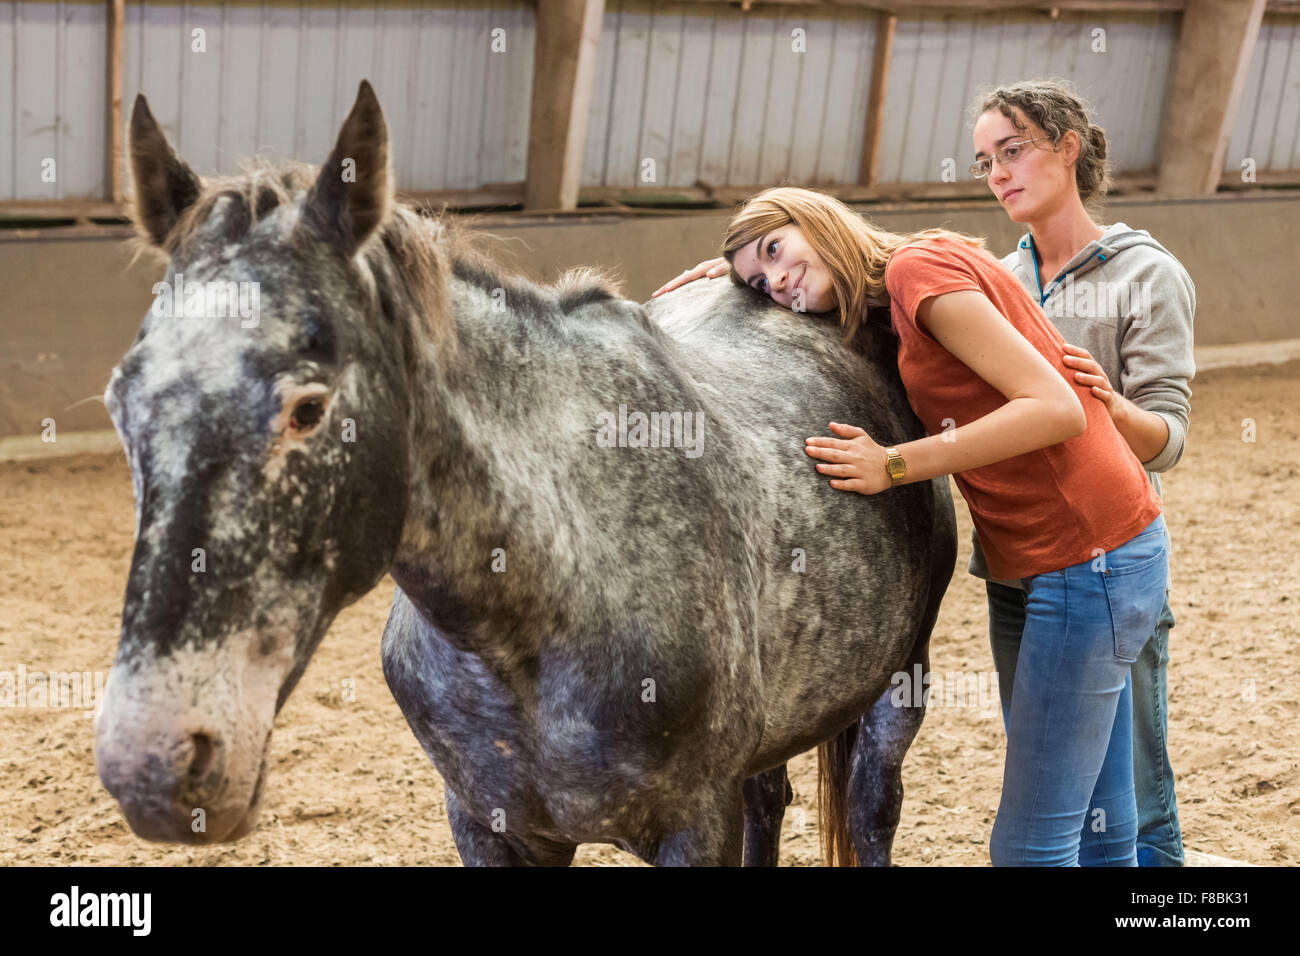 Young woman in horse therapy session with a therapist, Brie en Charente horseback riding, France. - Stock Image